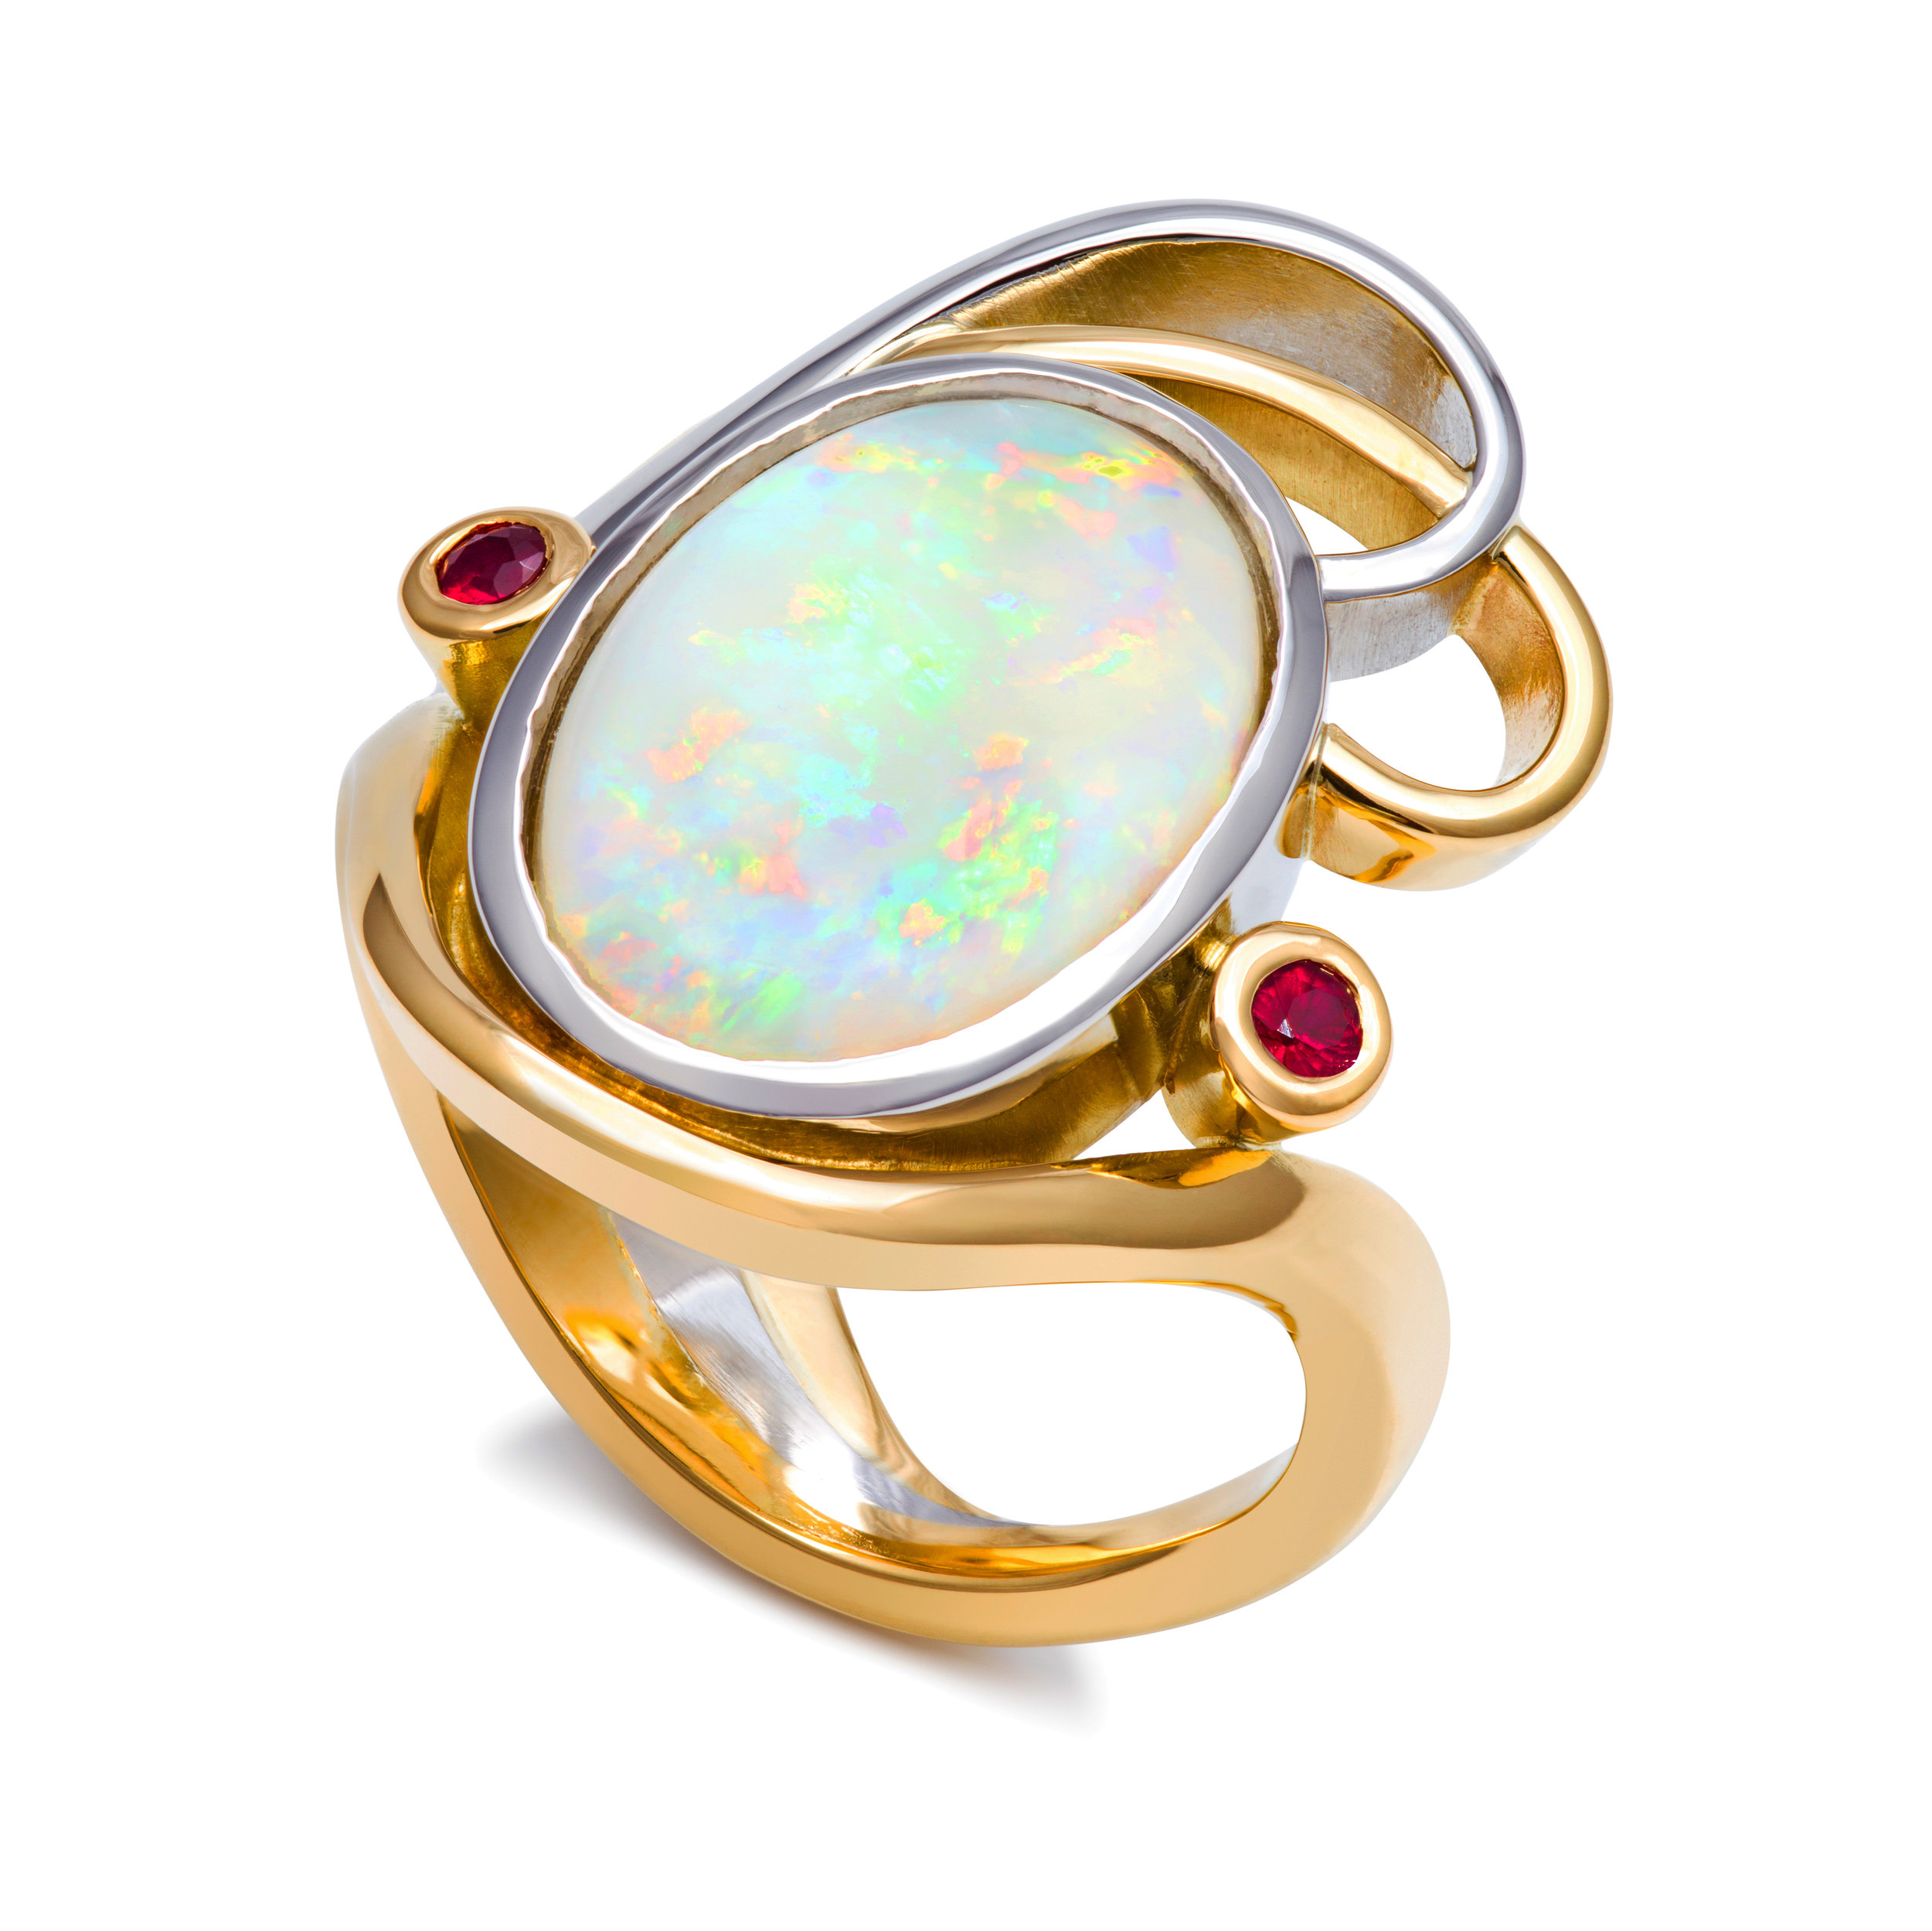 Bespoke 18ct yellow gold, platinum, opal and ruby dress ring commission